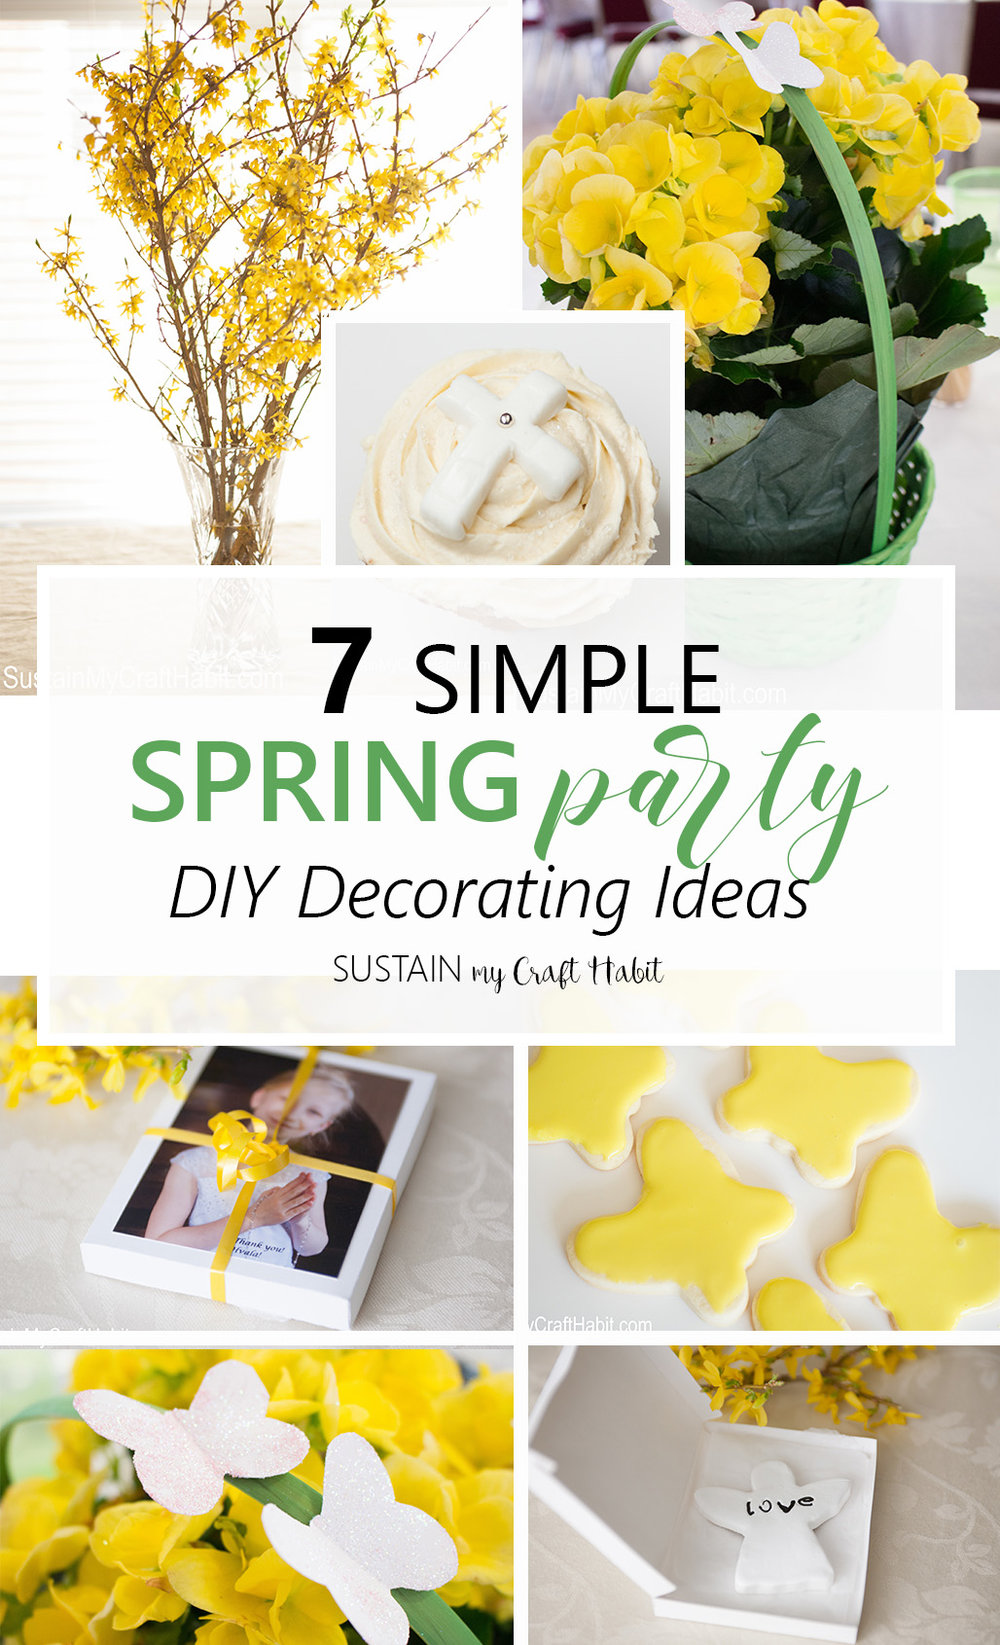 Simple Budget-Friendly DIY Spring Party Decorating Ideas. Inexpensive crafts for Easter, wedding, baby shower, First Communion or Christening.